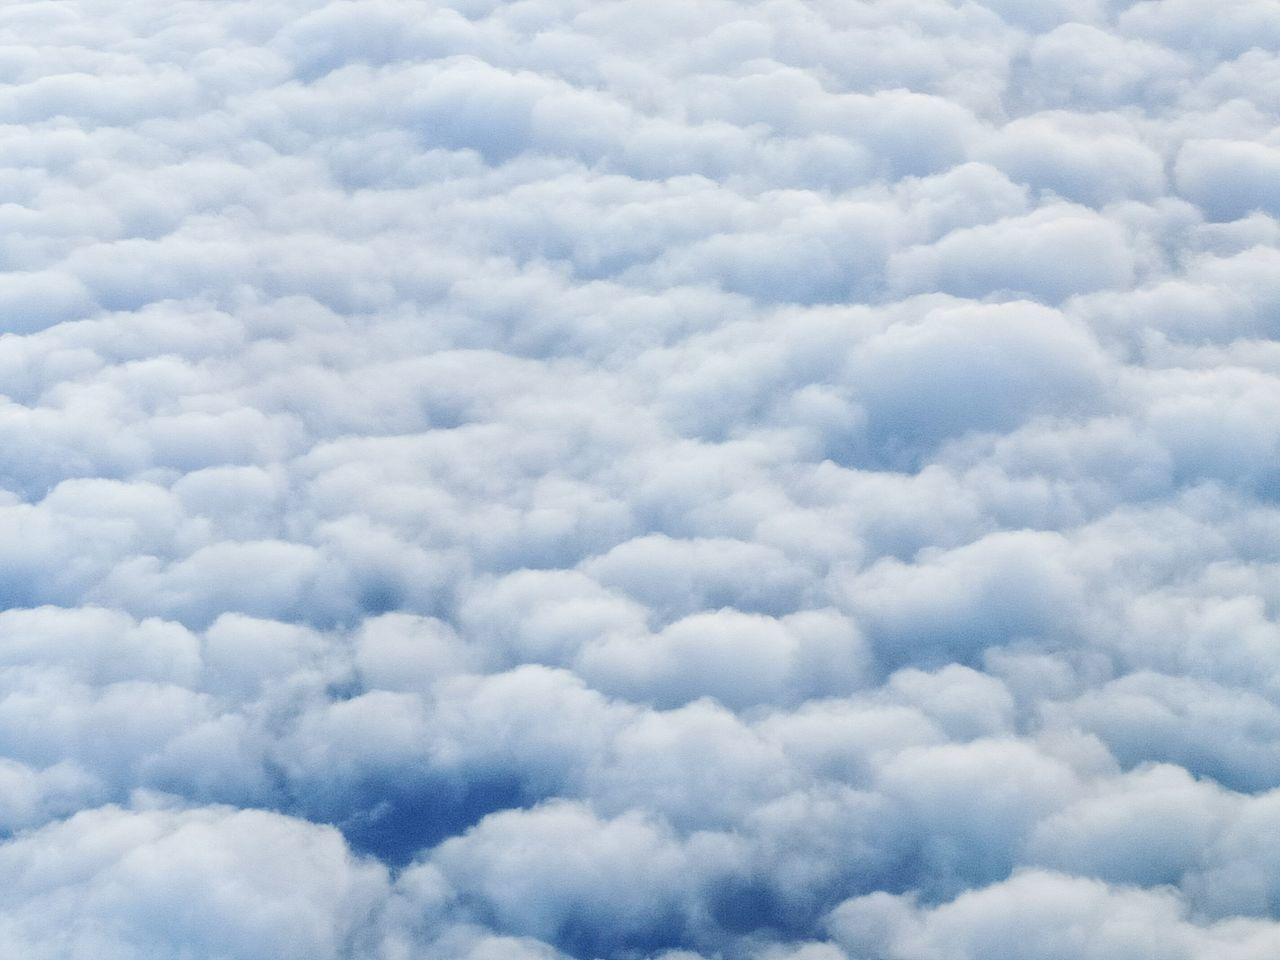 cloud - sky, backgrounds, nature, beauty in nature, cloudscape, white color, softness, sky, sky only, atmospheric mood, tranquility, weather, scenics, heaven, no people, full frame, low angle view, day, outdoors, blue